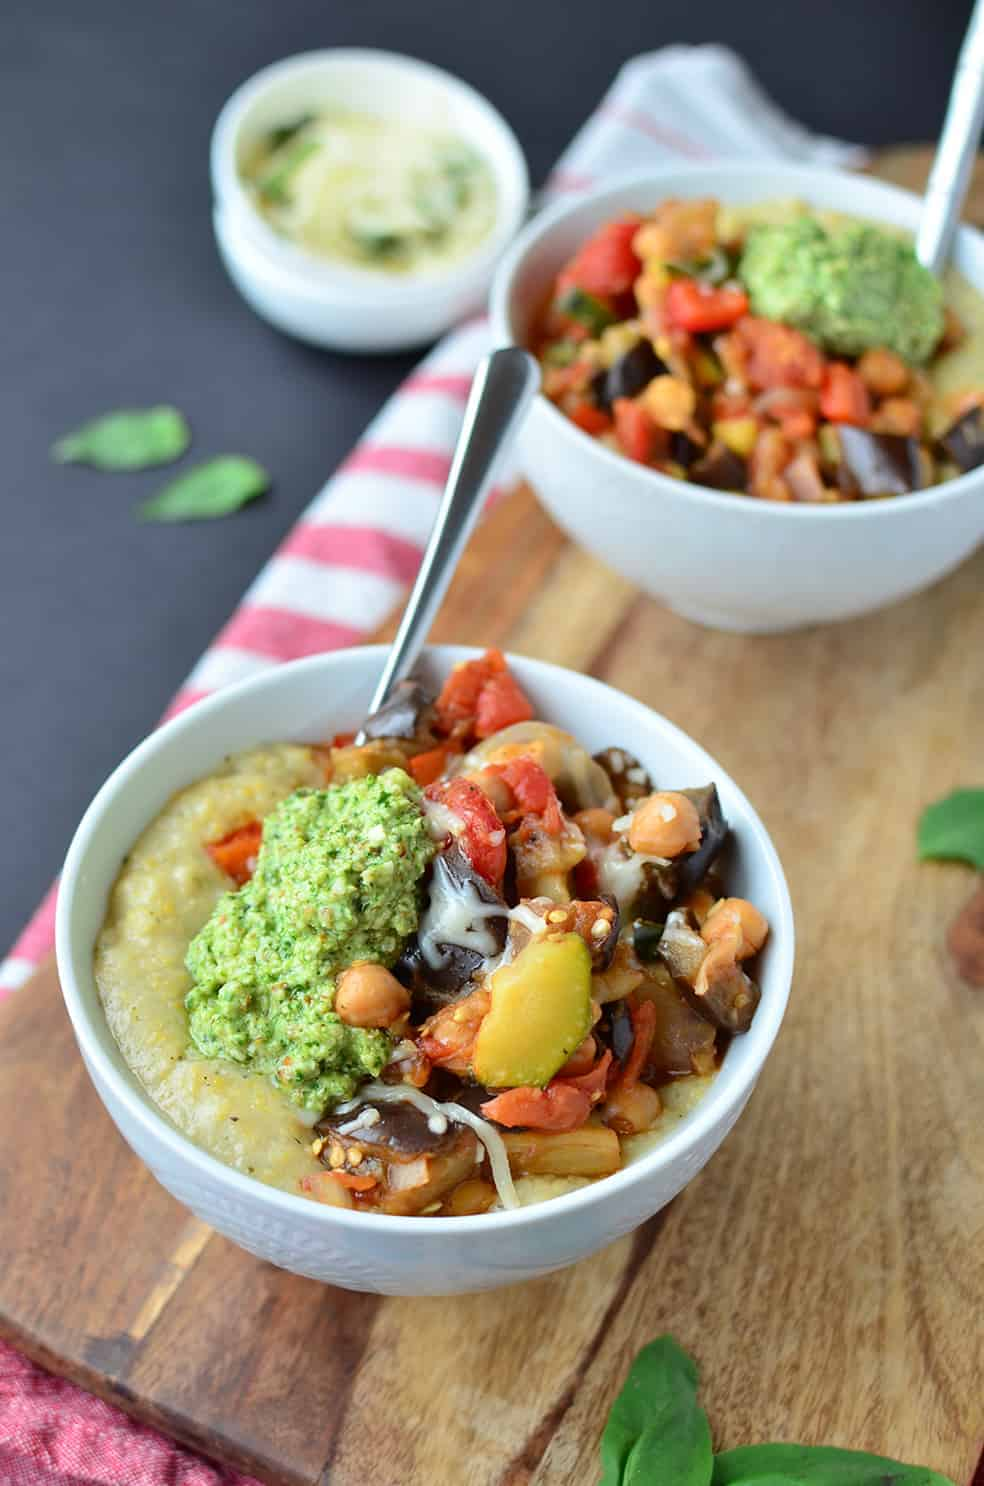 Summer Vegetable Polenta Bowls! Creamy garlic & herb polenta topped with roasted summer vegetables and pesto. Hearty and healthy! #vegetarian #glutenfree | www.delishknowledge.com